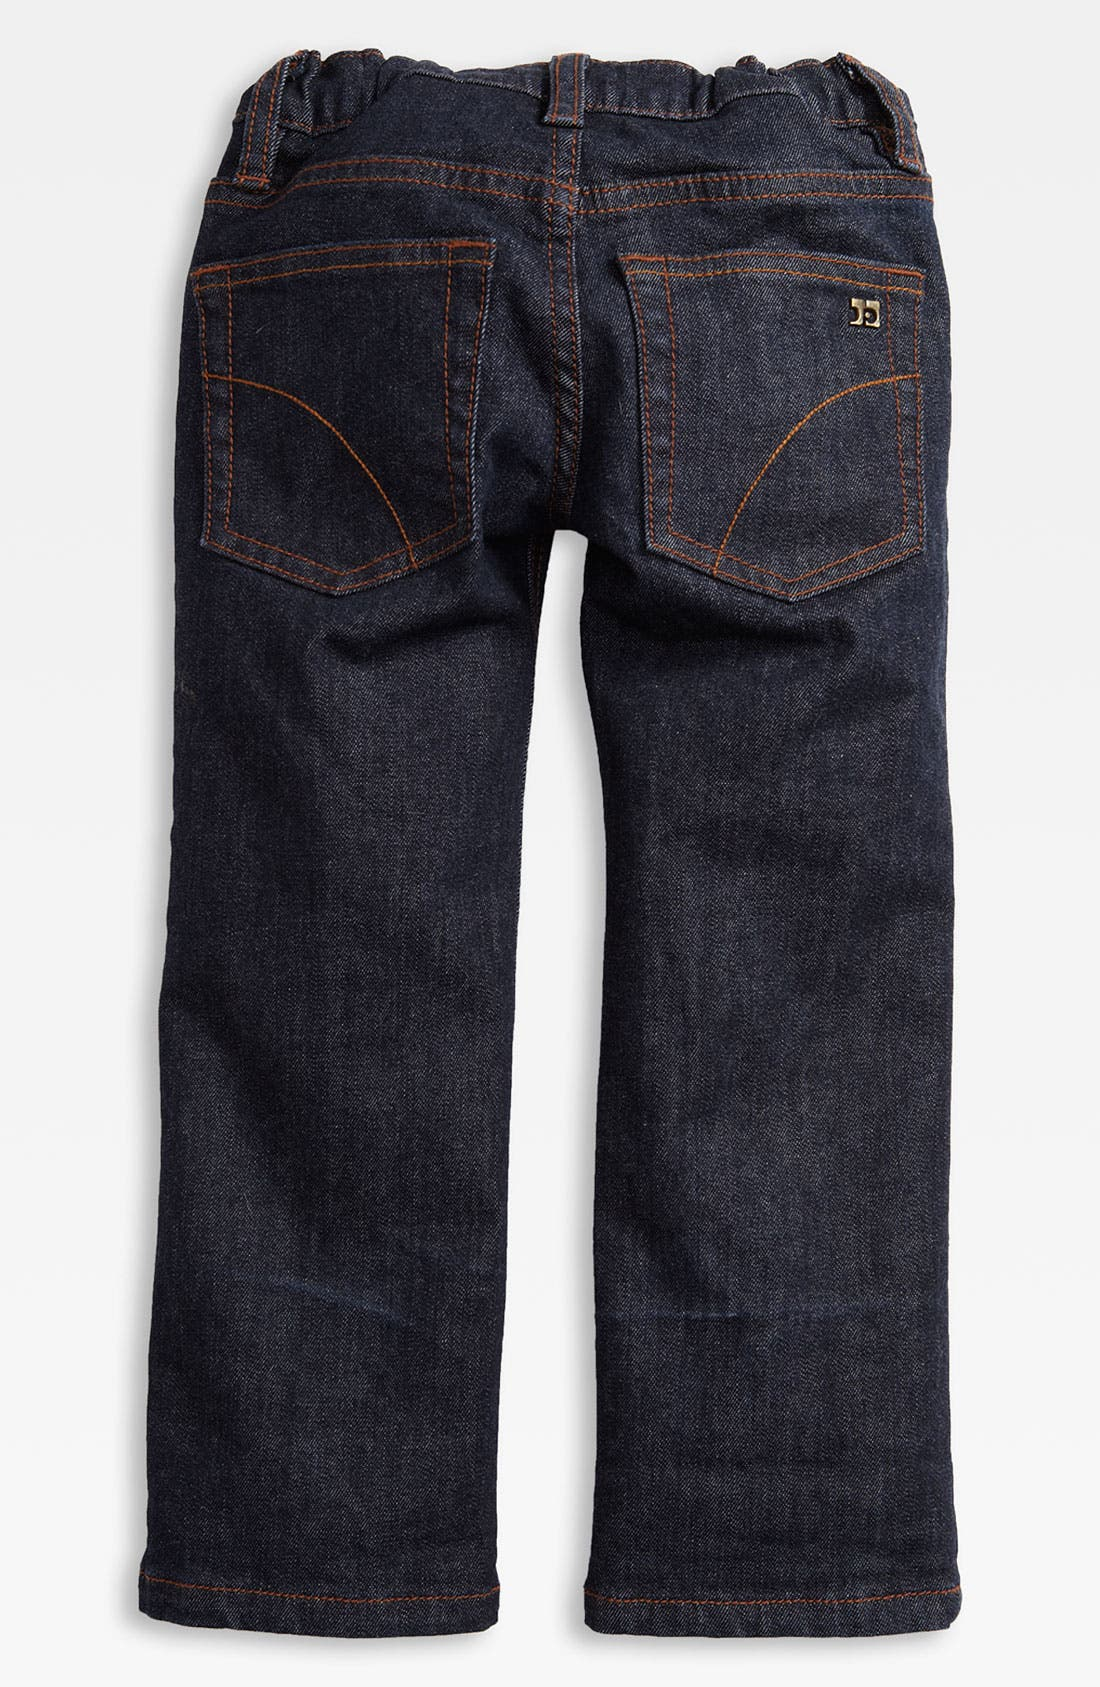 Alternate Image 1 Selected - Joe's 'Brixton' Skinny Jeans (Toddler)